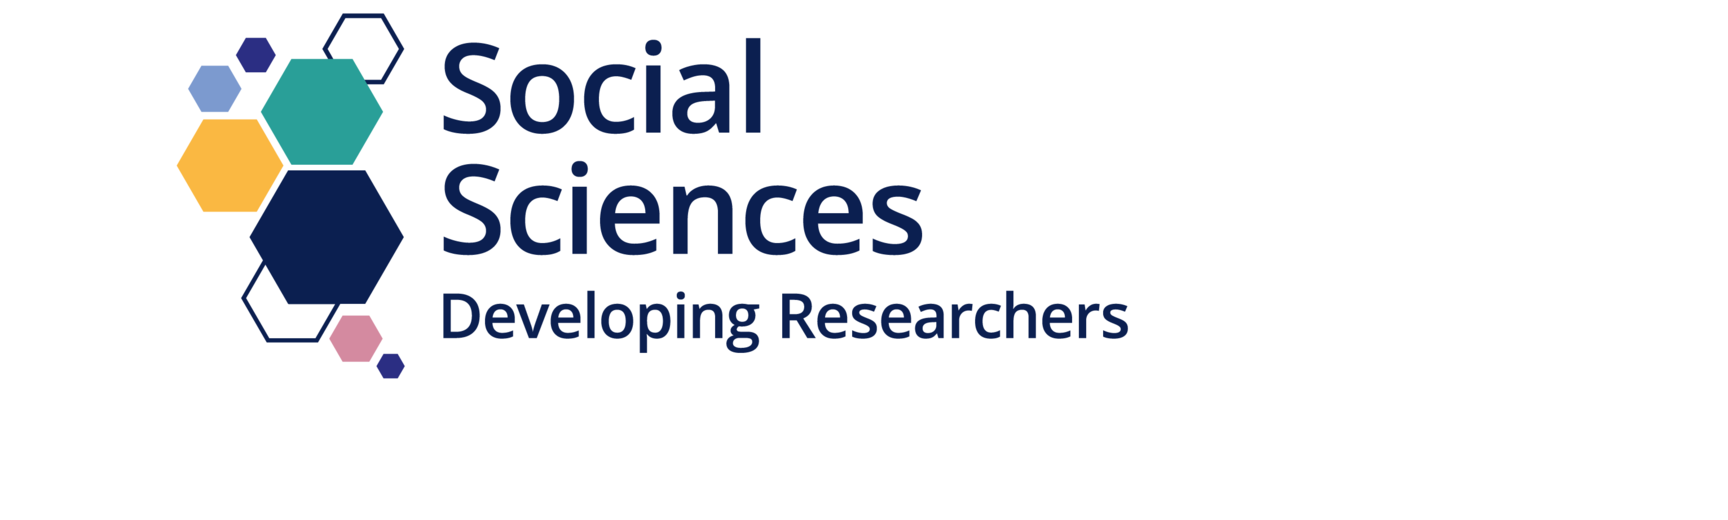 social sciences developing researchers masterlogo3